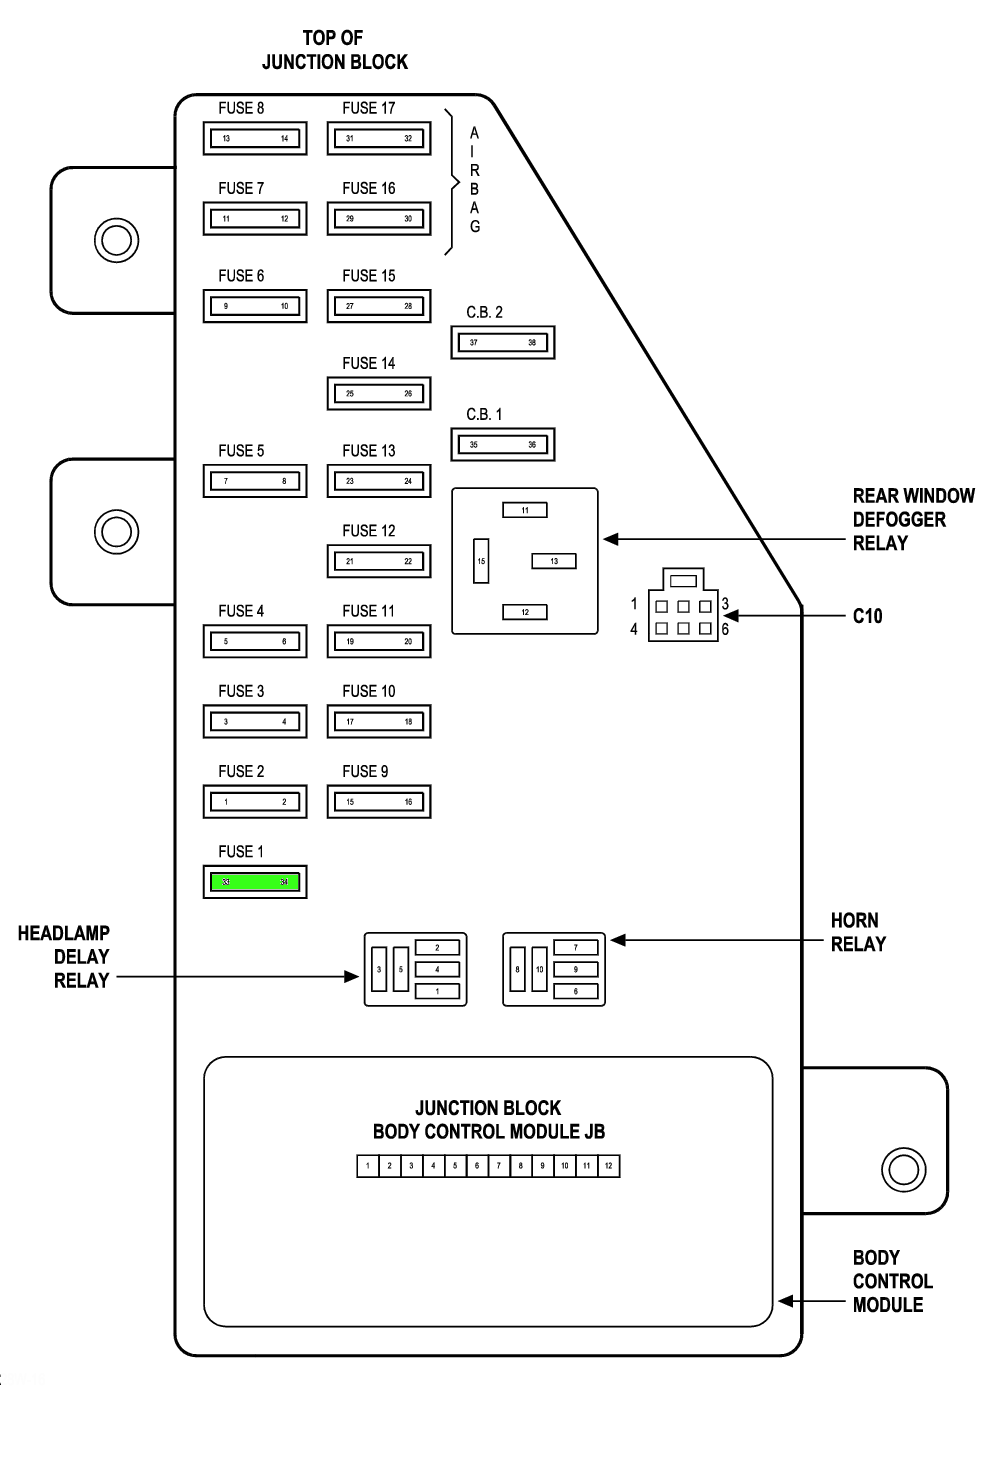 2006 Chrysler Fuse Box Diagram Good 1st Wiring Relay In A Pdf 2012 200 Simple Rh 56 Mara Cujas De 300 Sebring